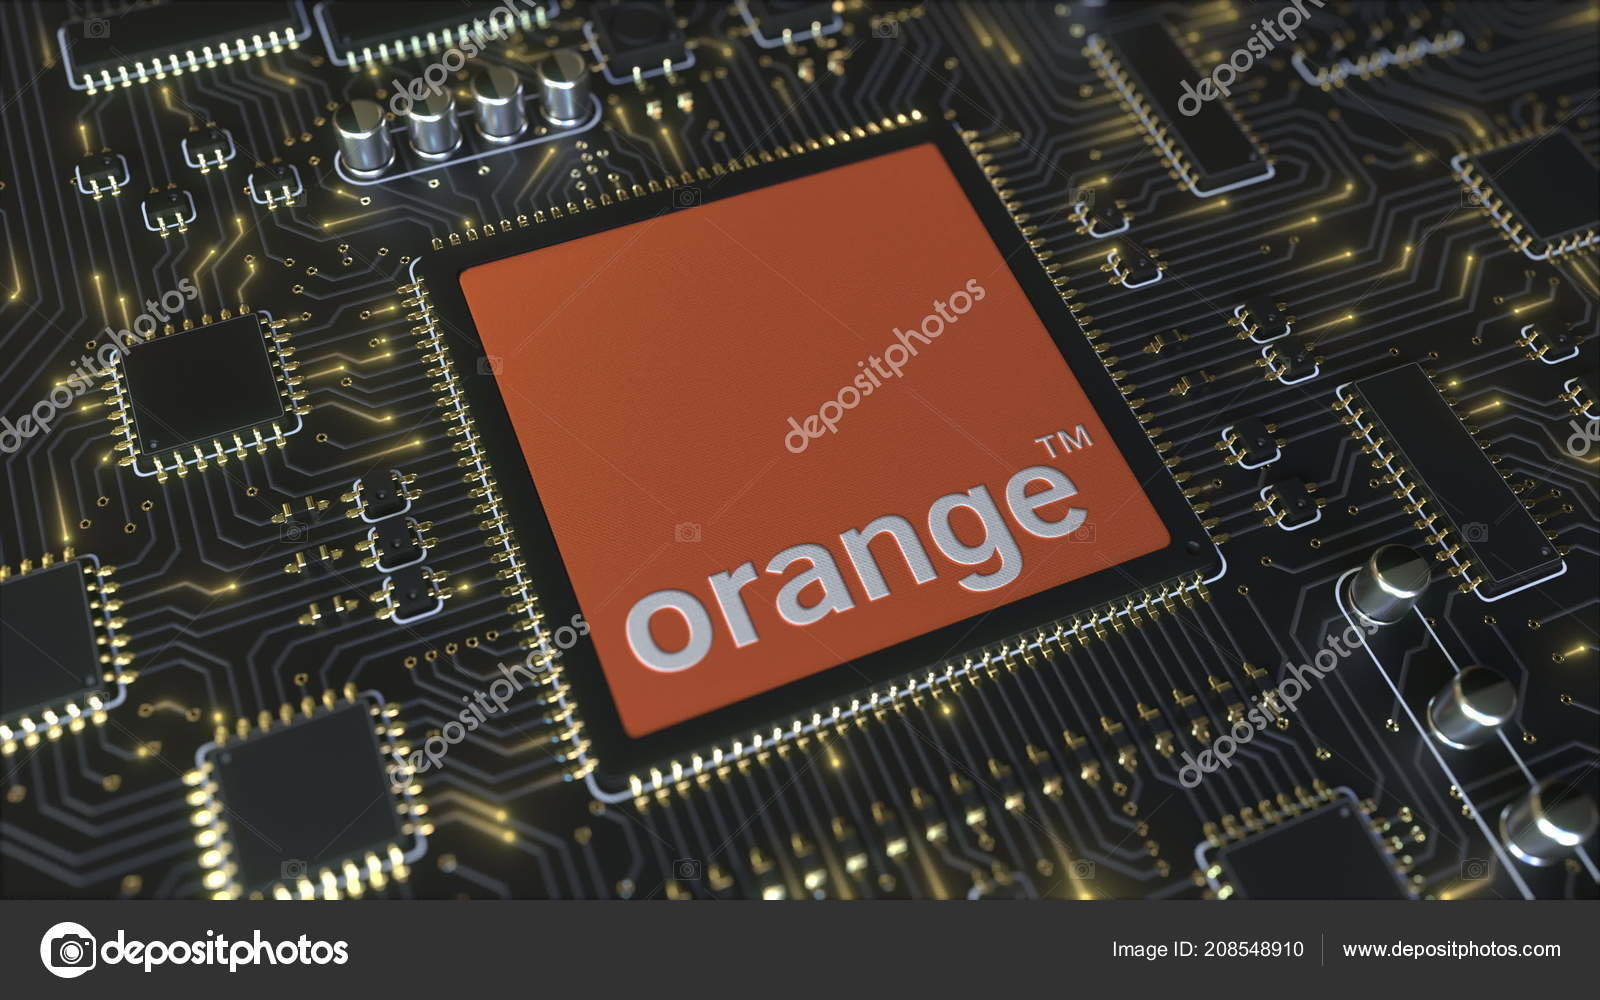 Computer printed circuit board or PCB with Orange S.A. logo ...